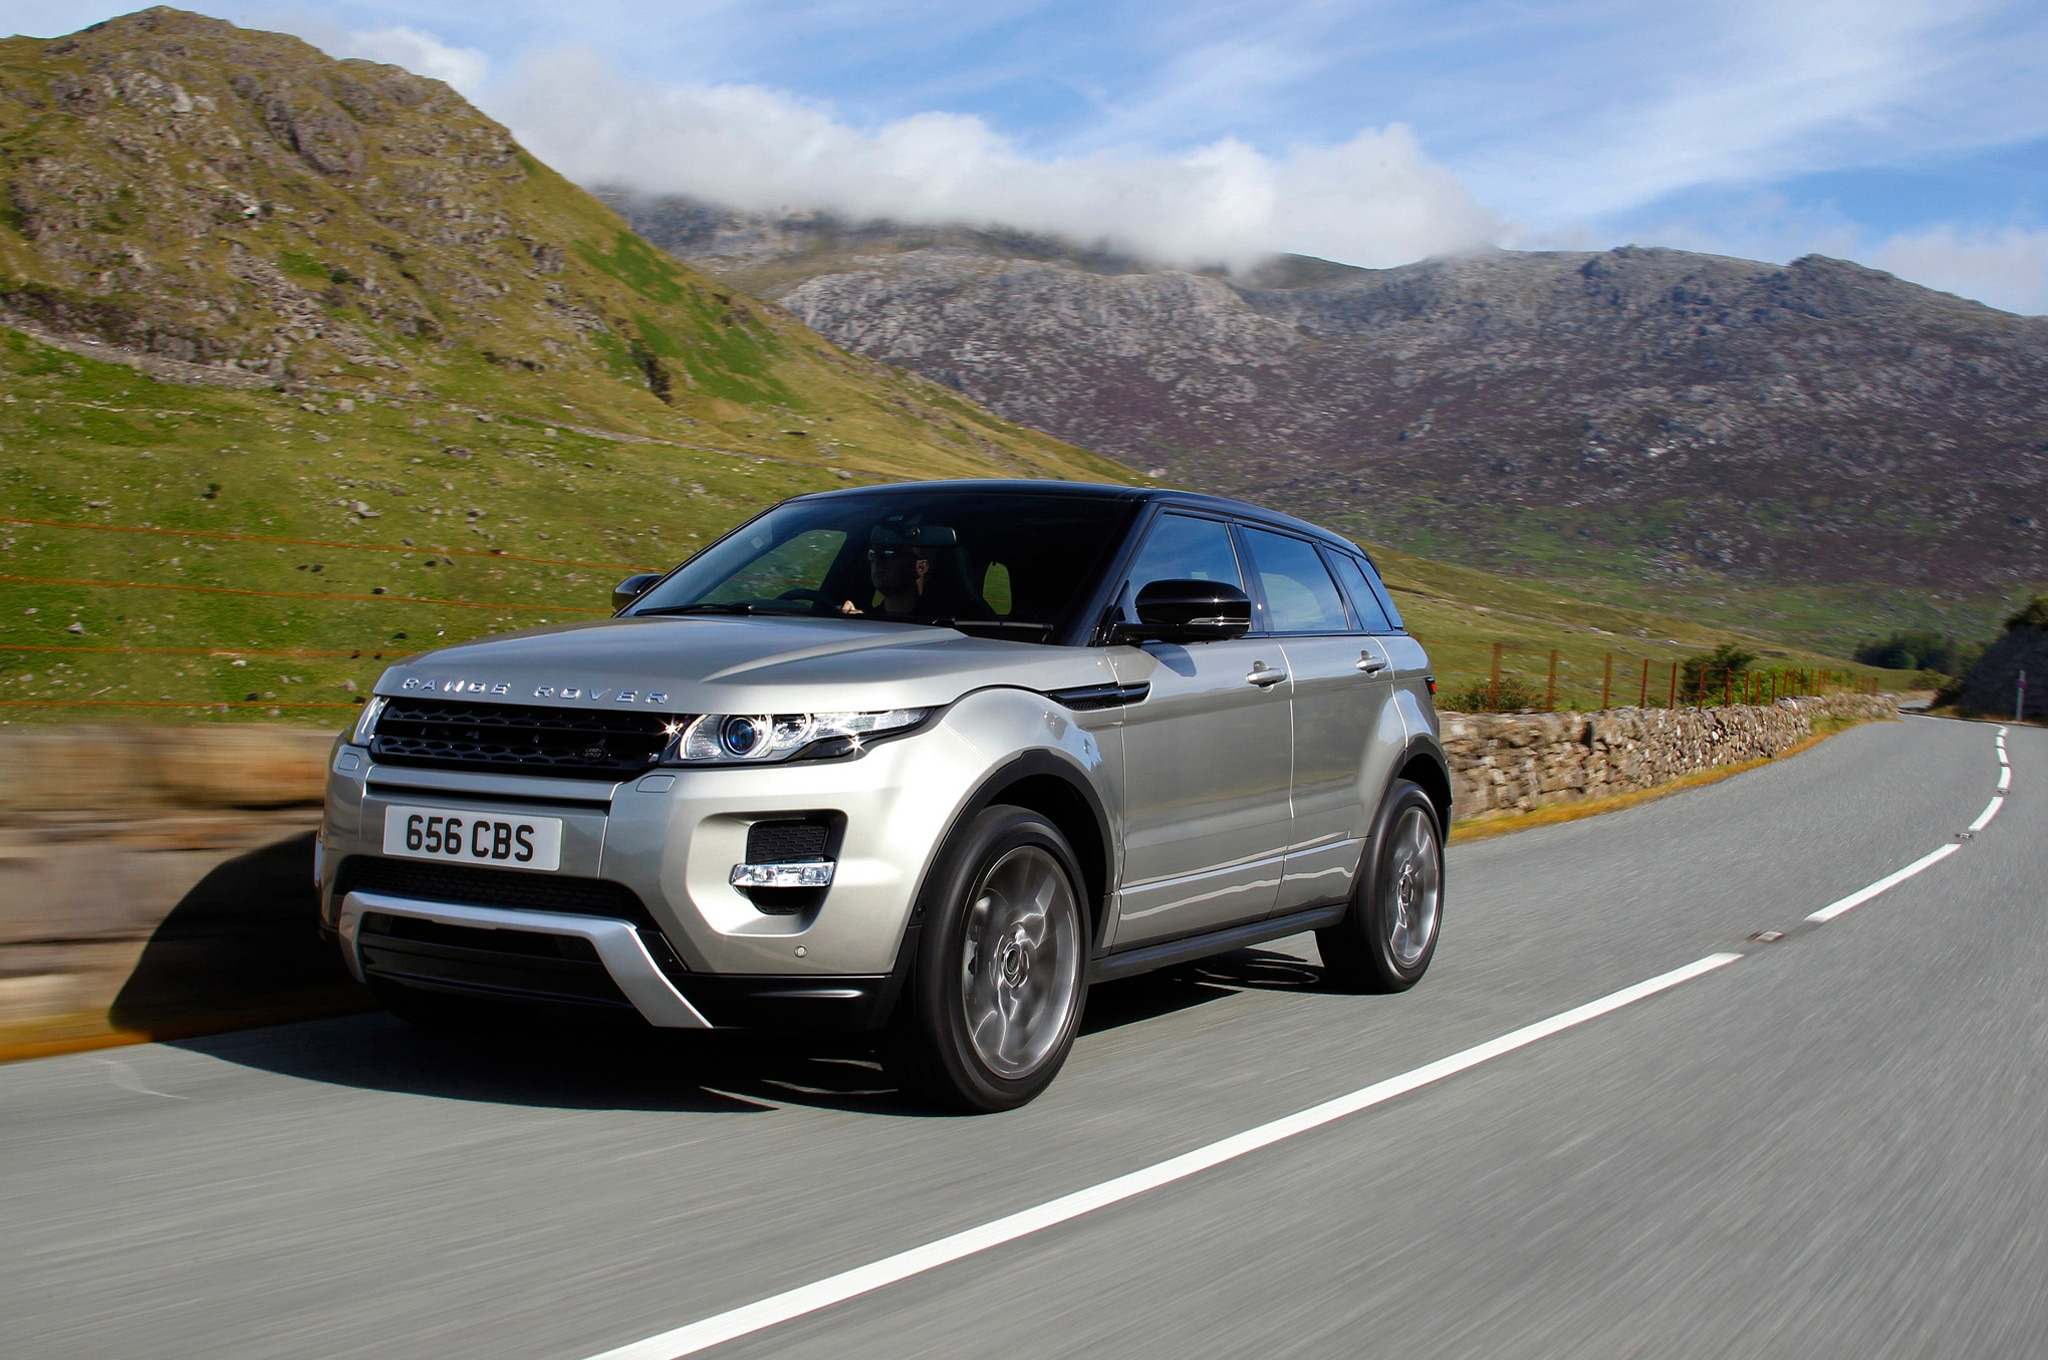 2013 Land Rover Range Rover Evoque Front Three Quarters In Motion 41